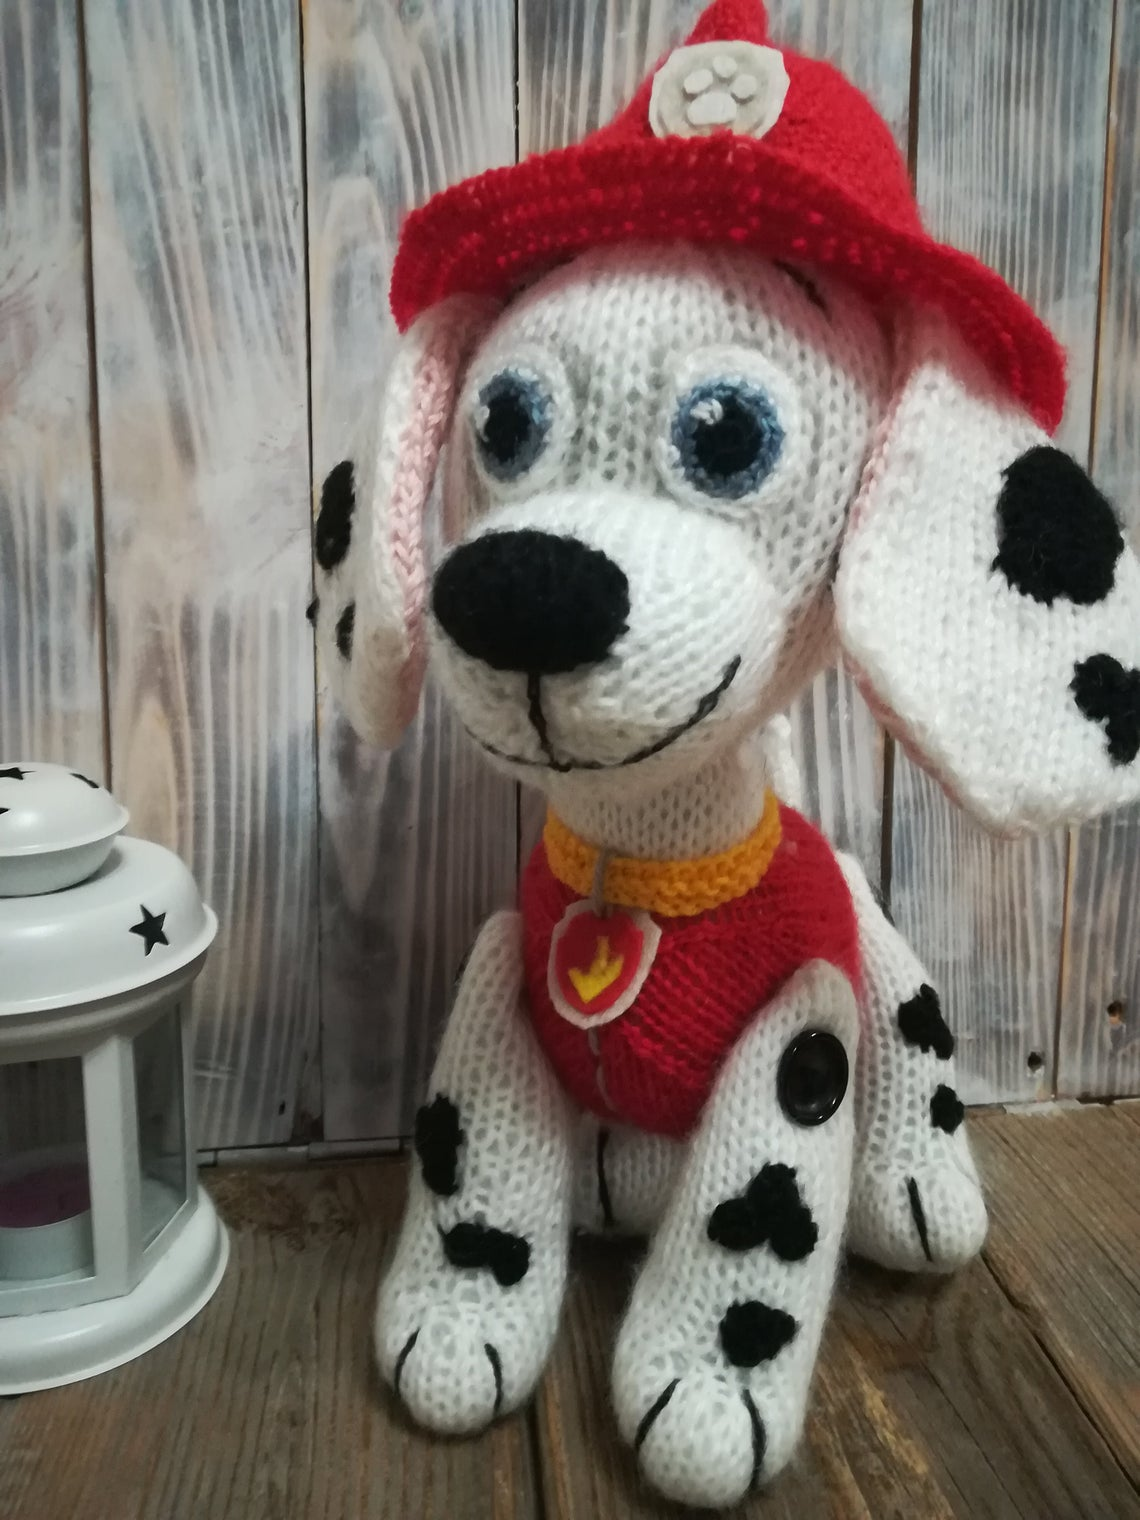 4 Paw Patrol Doll Patterns For Knitters!